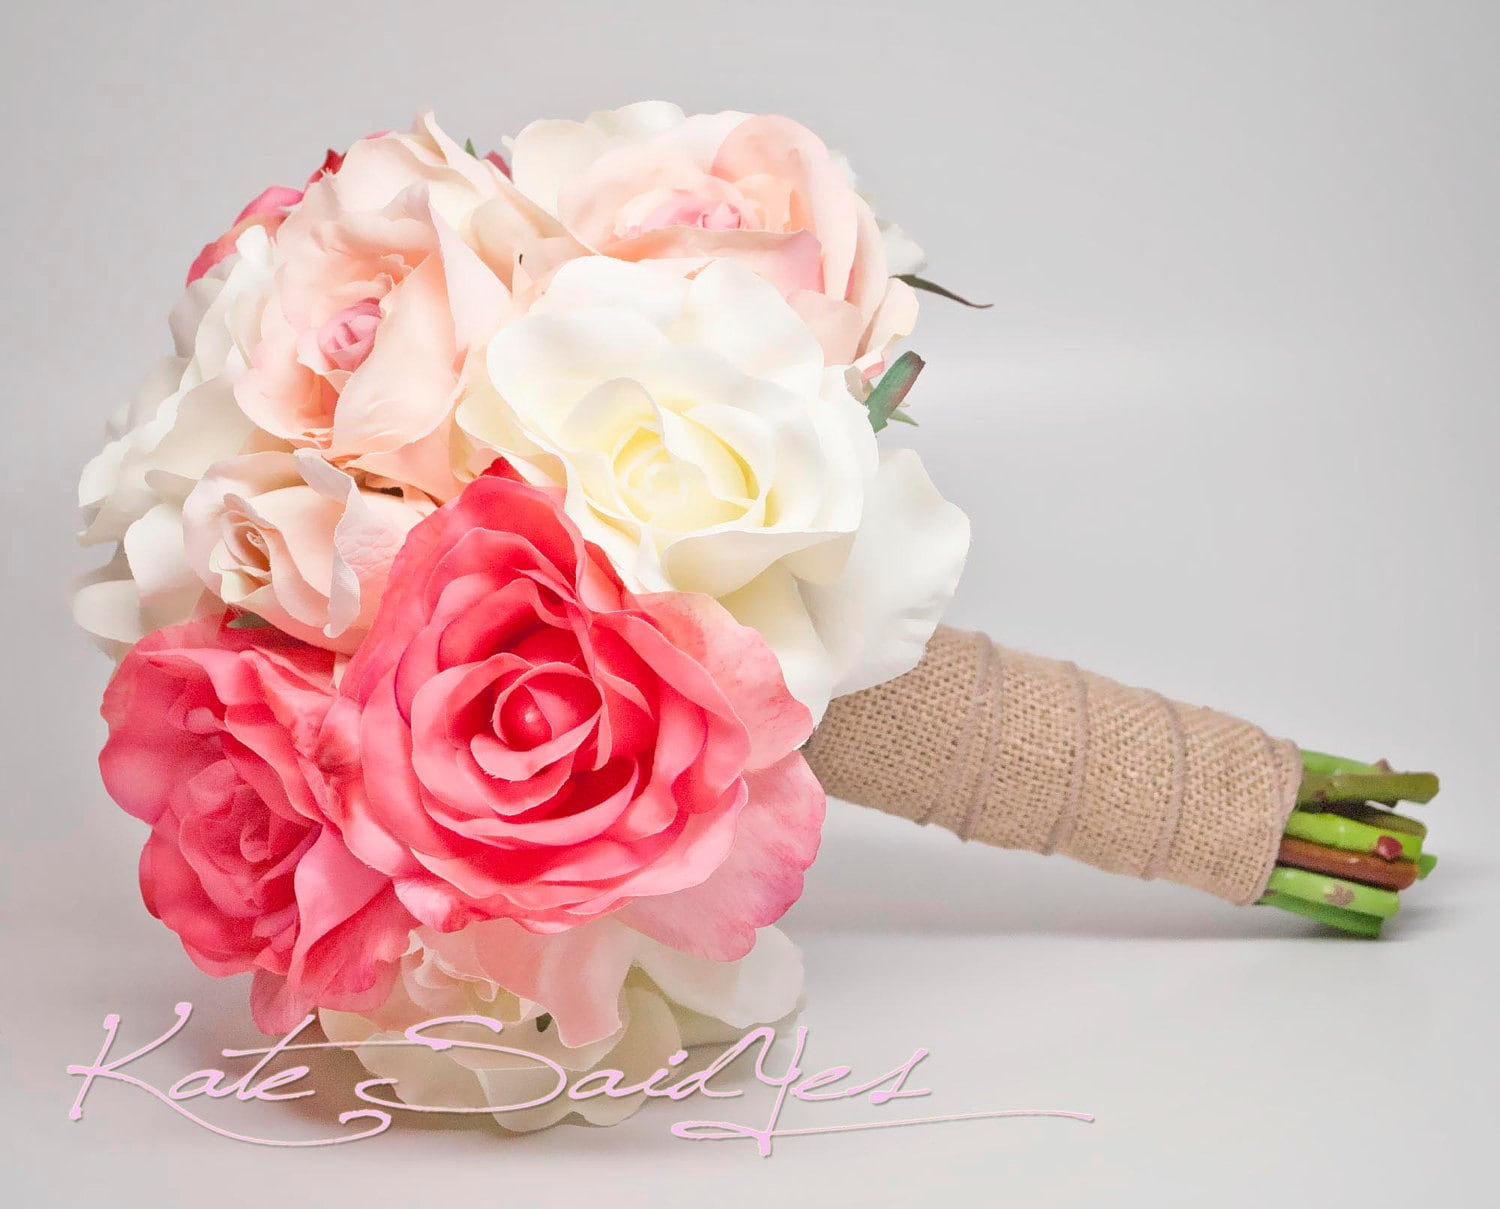 pure pink rose bouquet - photo #17